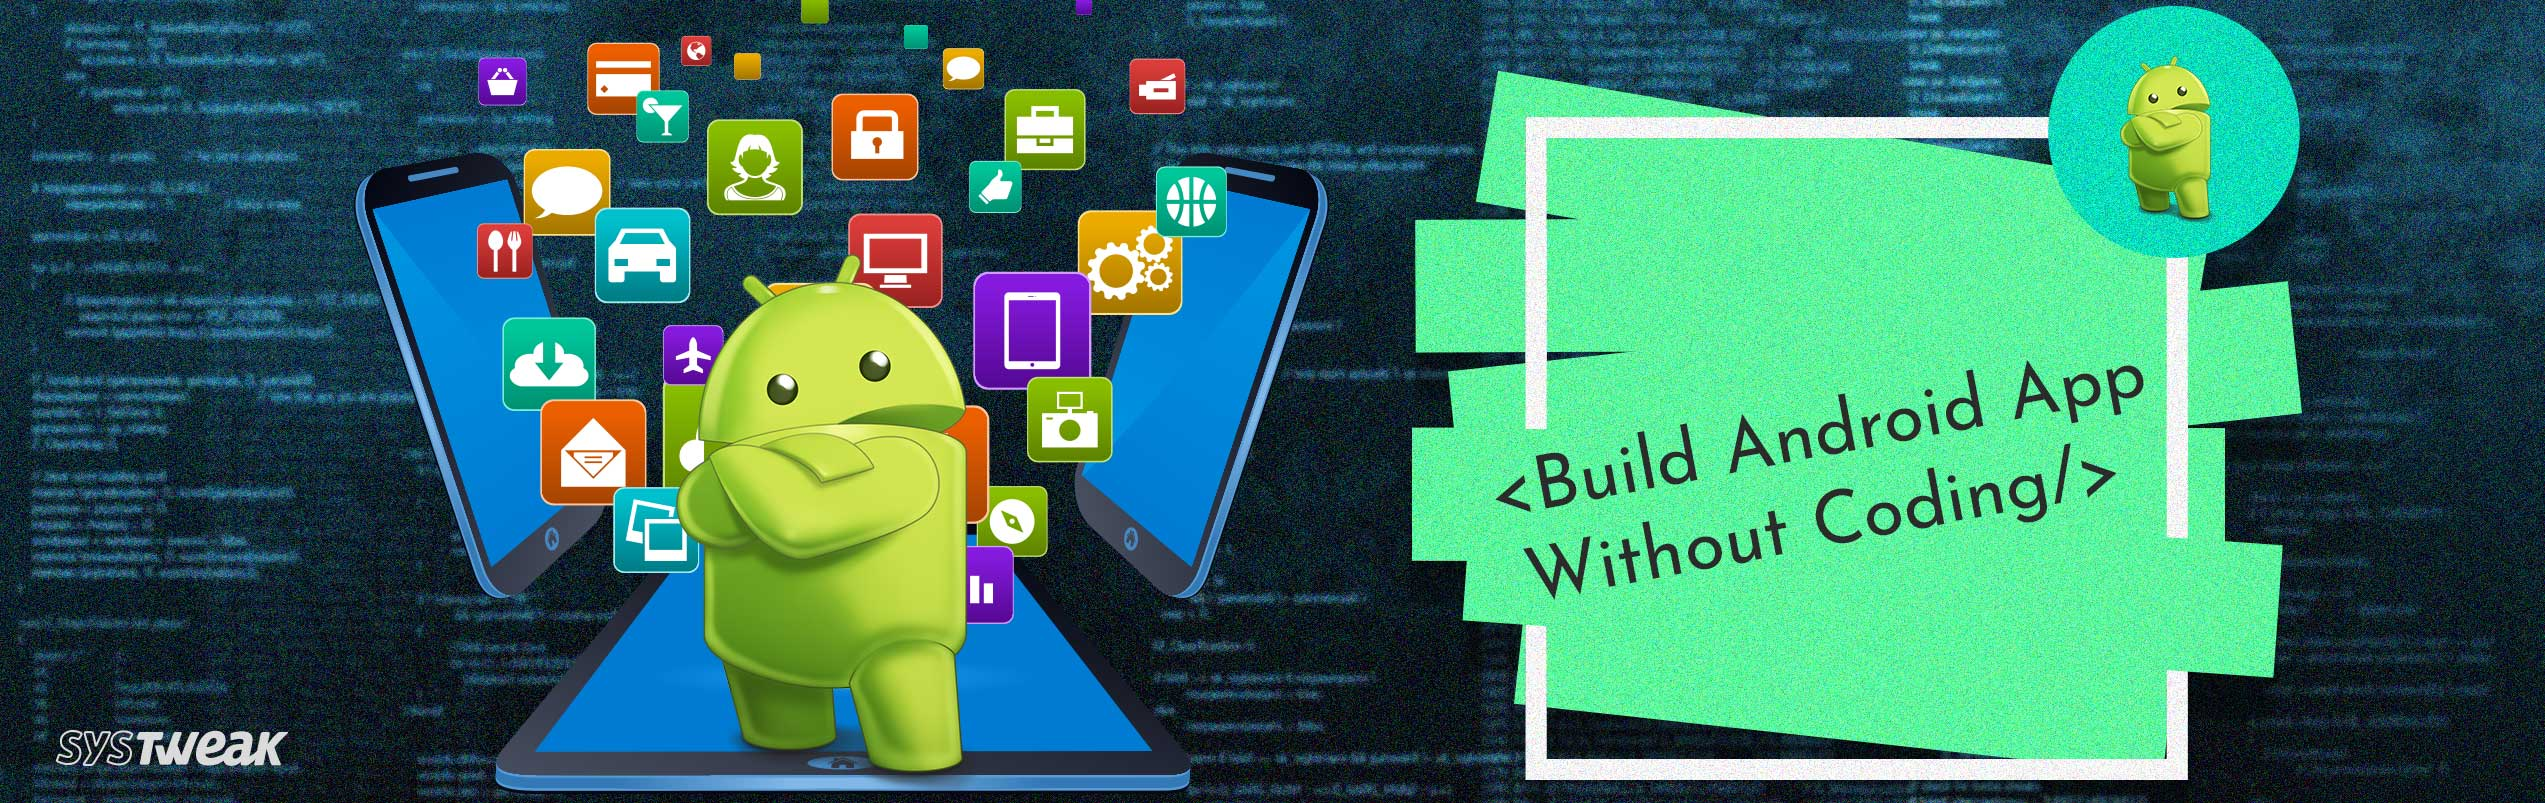 How To Build Android App Without Coding